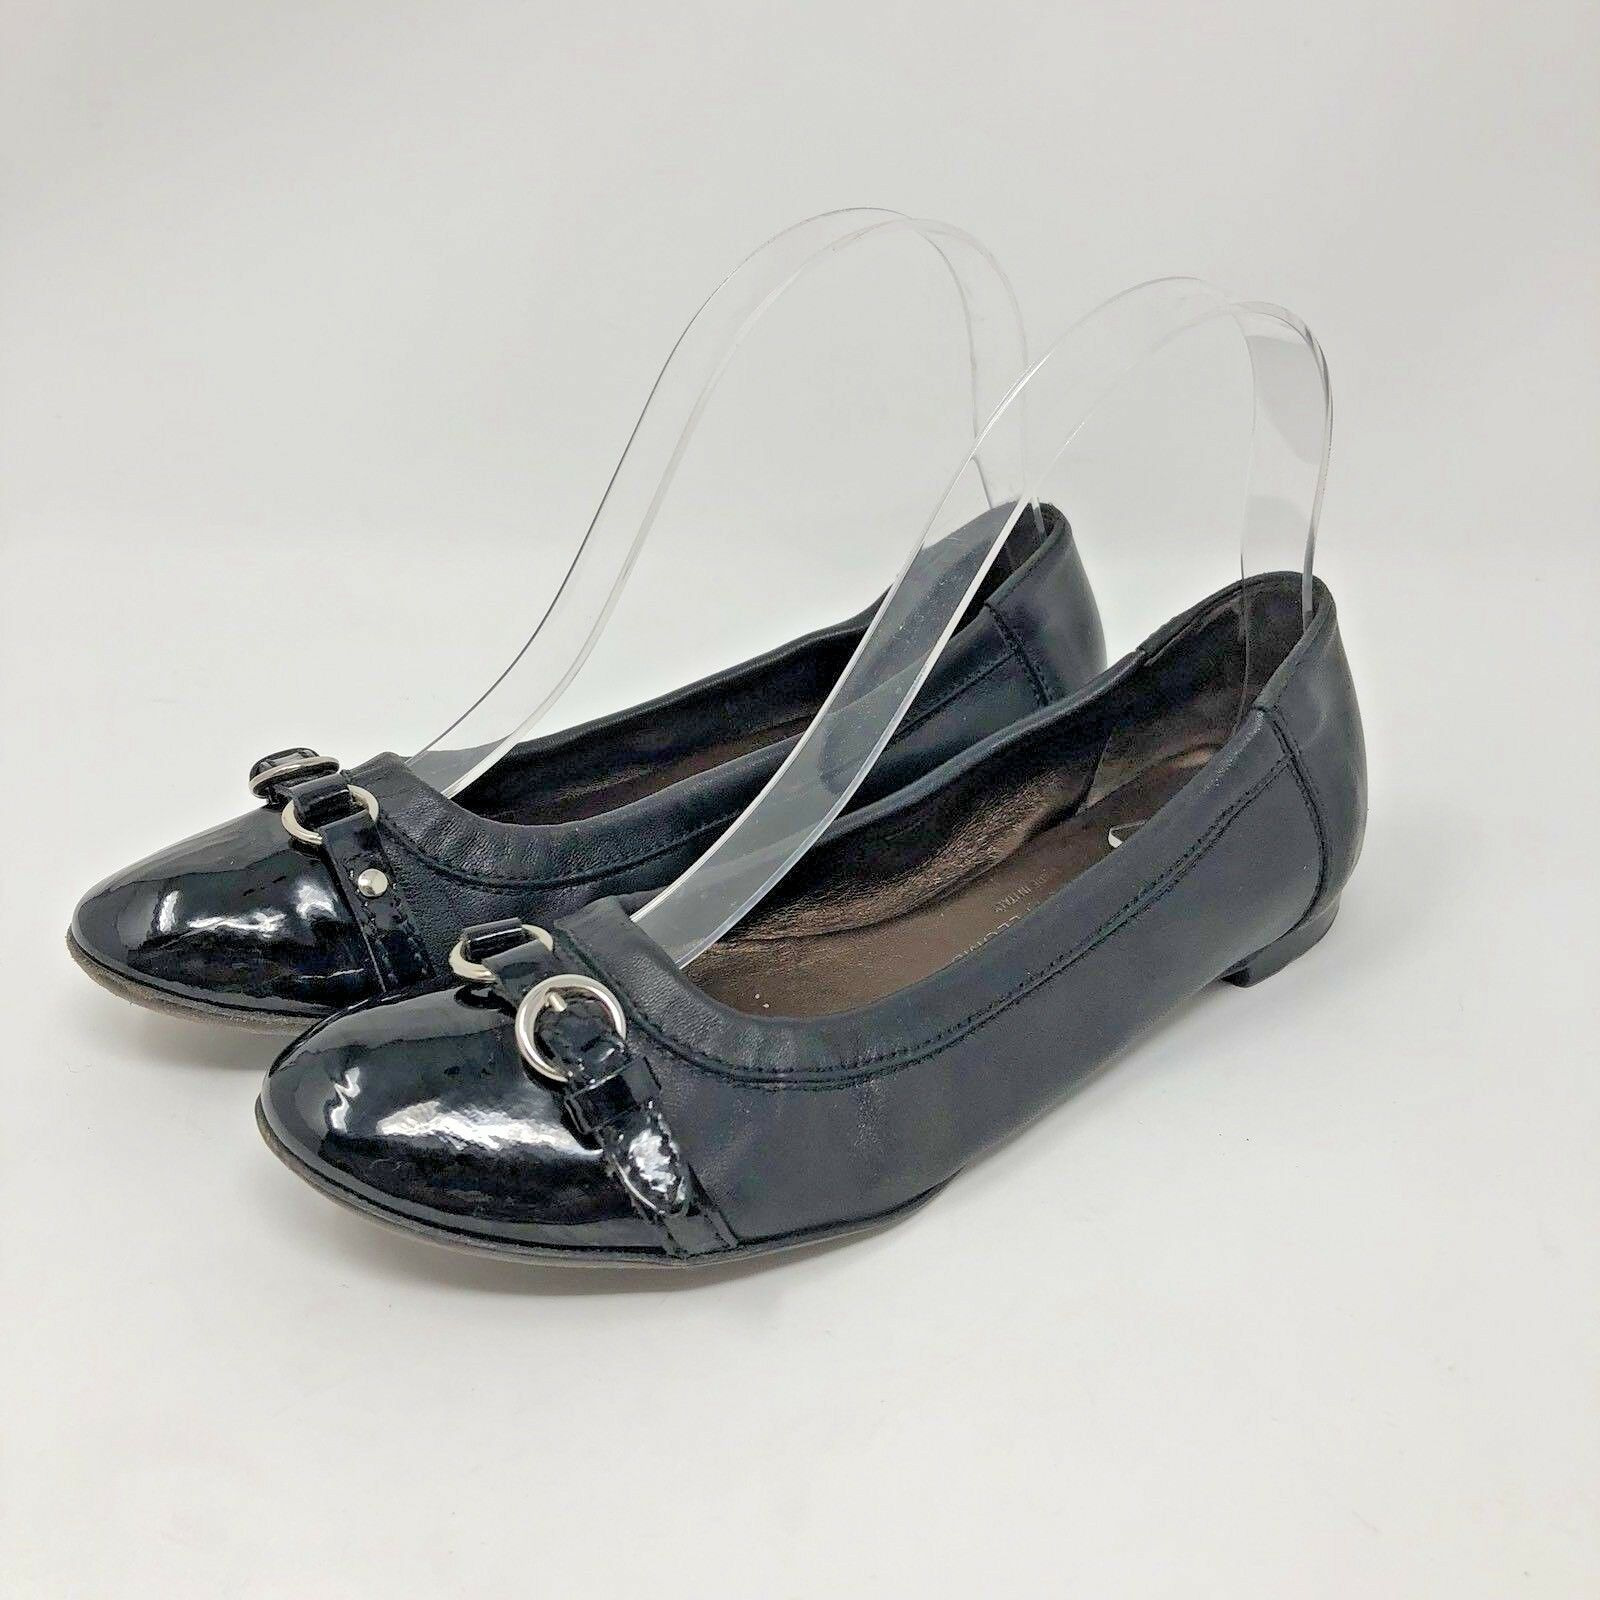 AGL Leather Ballet Flats 36 Black Patent Cap Toe Buckle Belted Slip On Shoes